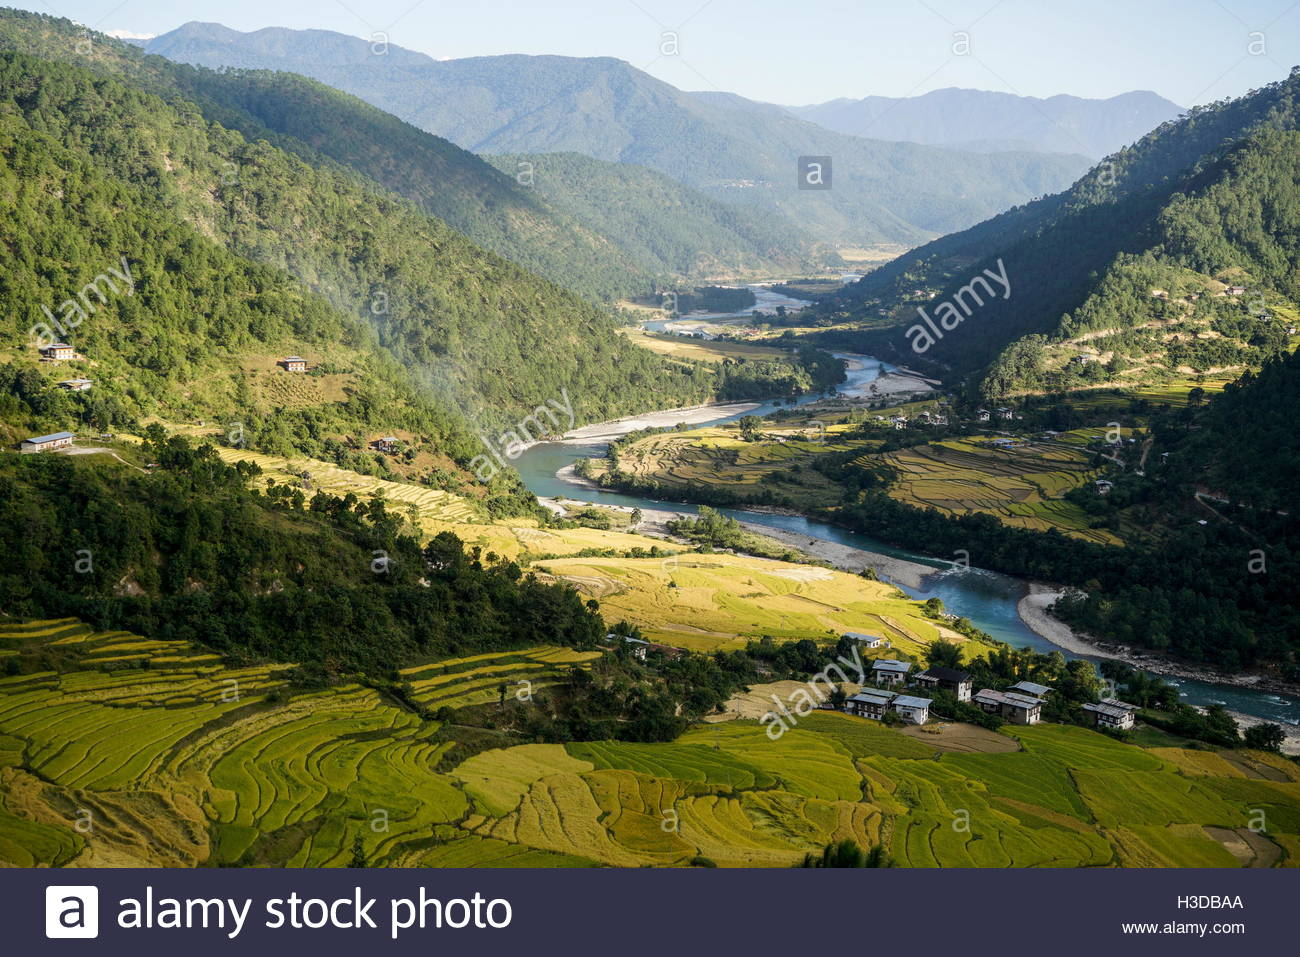 Terraced rice fields and Mo Chhu river in Punakha, Bhutan. - Stock Image